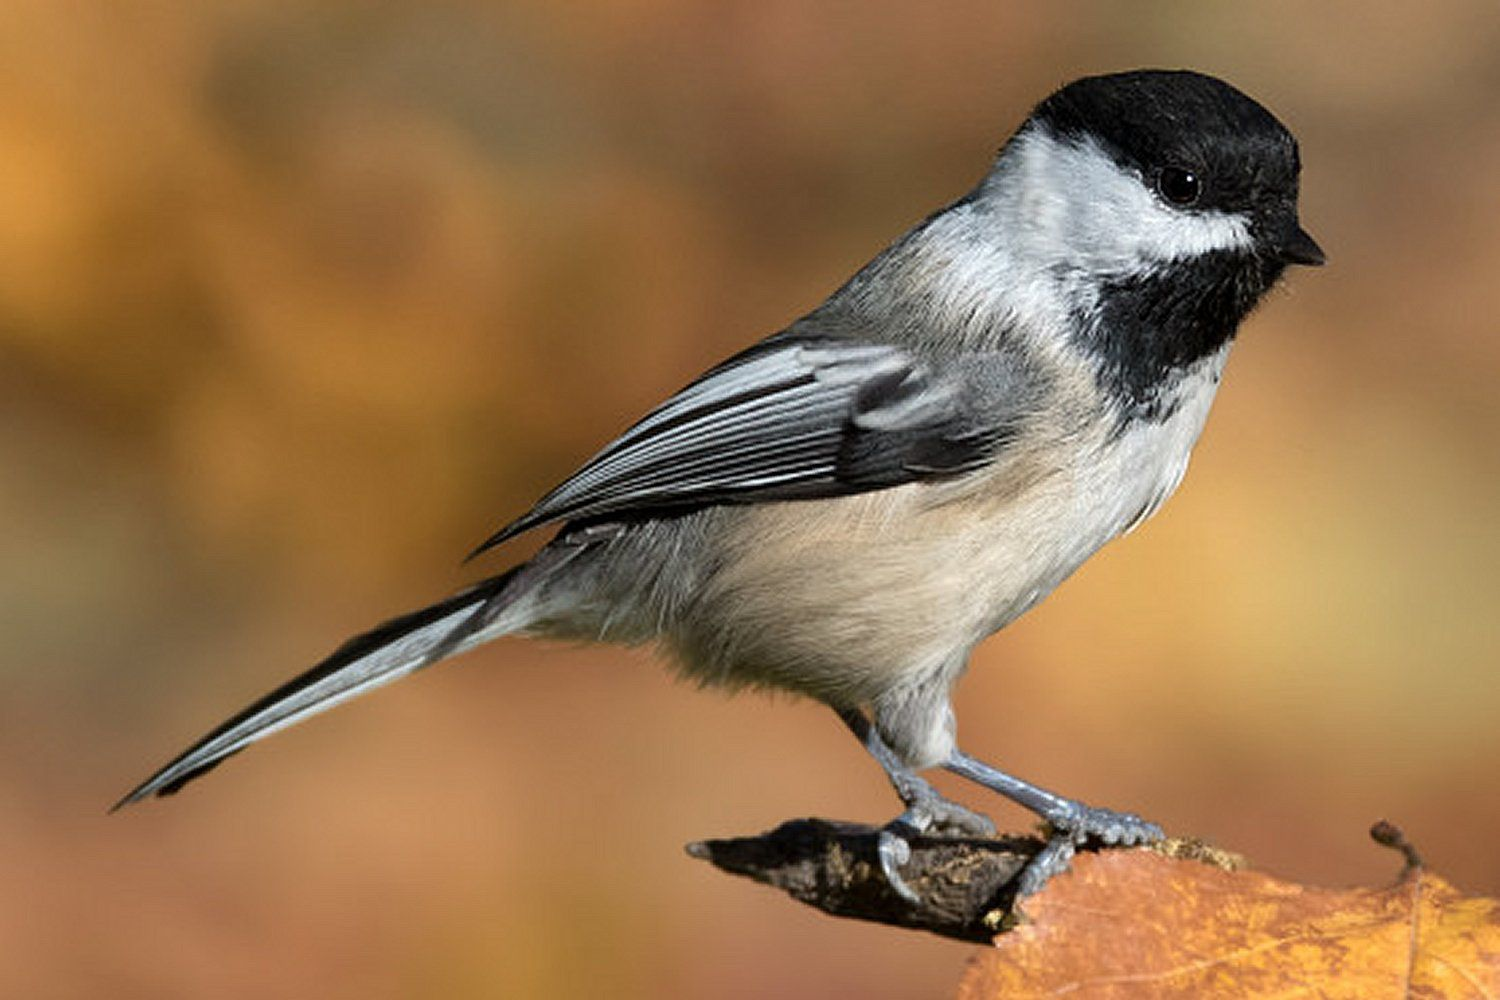 Black-Capped Chickadee, the state bird of Massachusetts, standing on a tree branch.